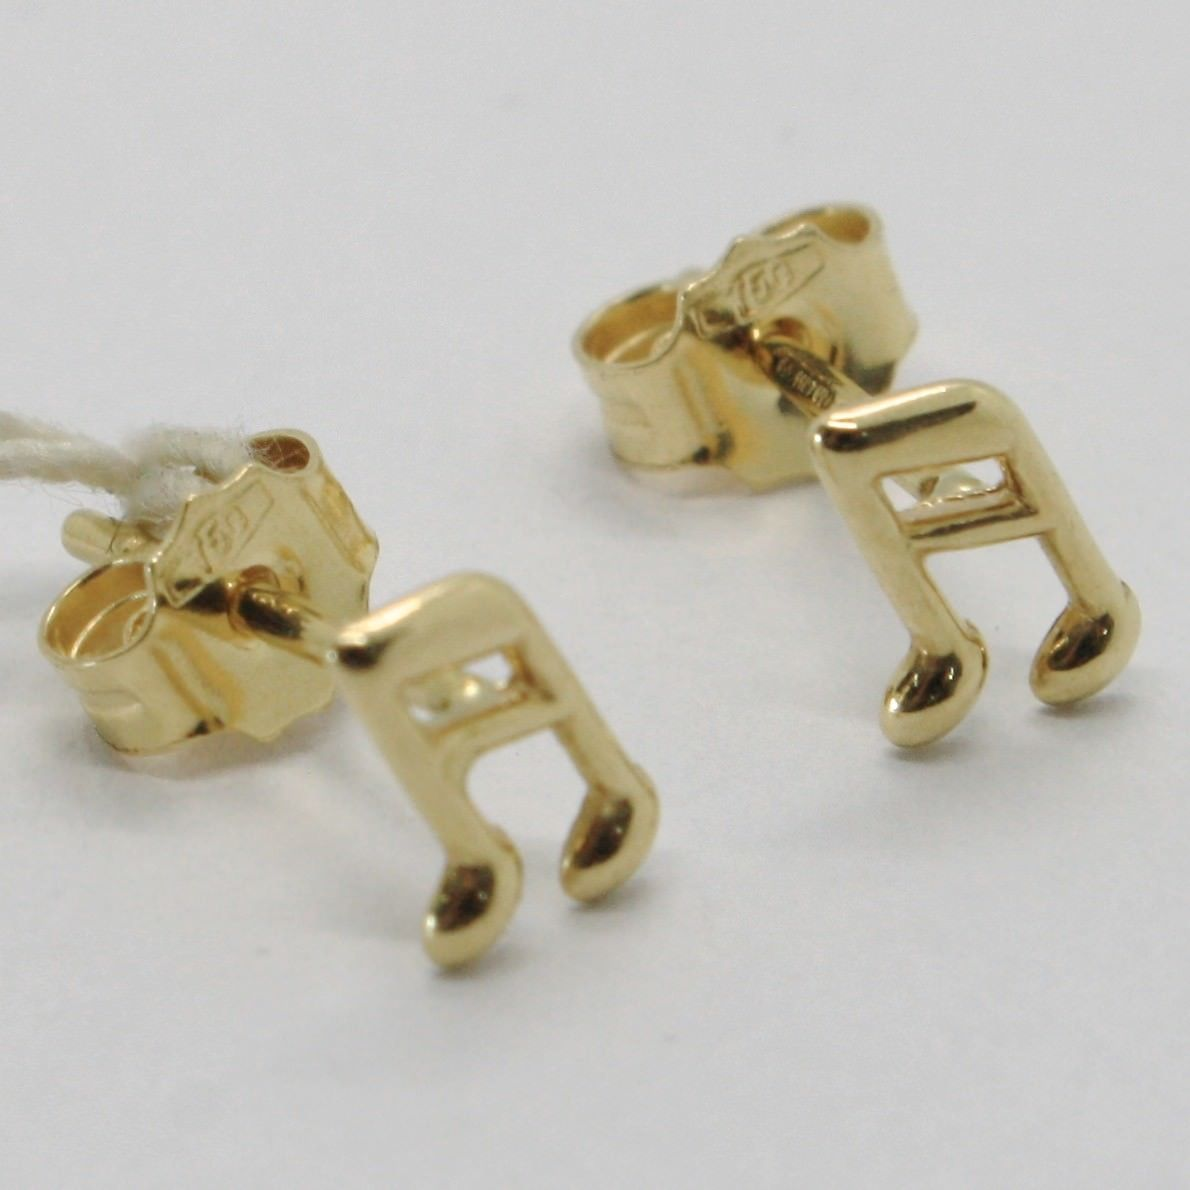 18K YELLOW GOLD EARRINGS, WITH MINI MUSICAL NOTE, LENGTH 7 MM, MADE IN ITALY